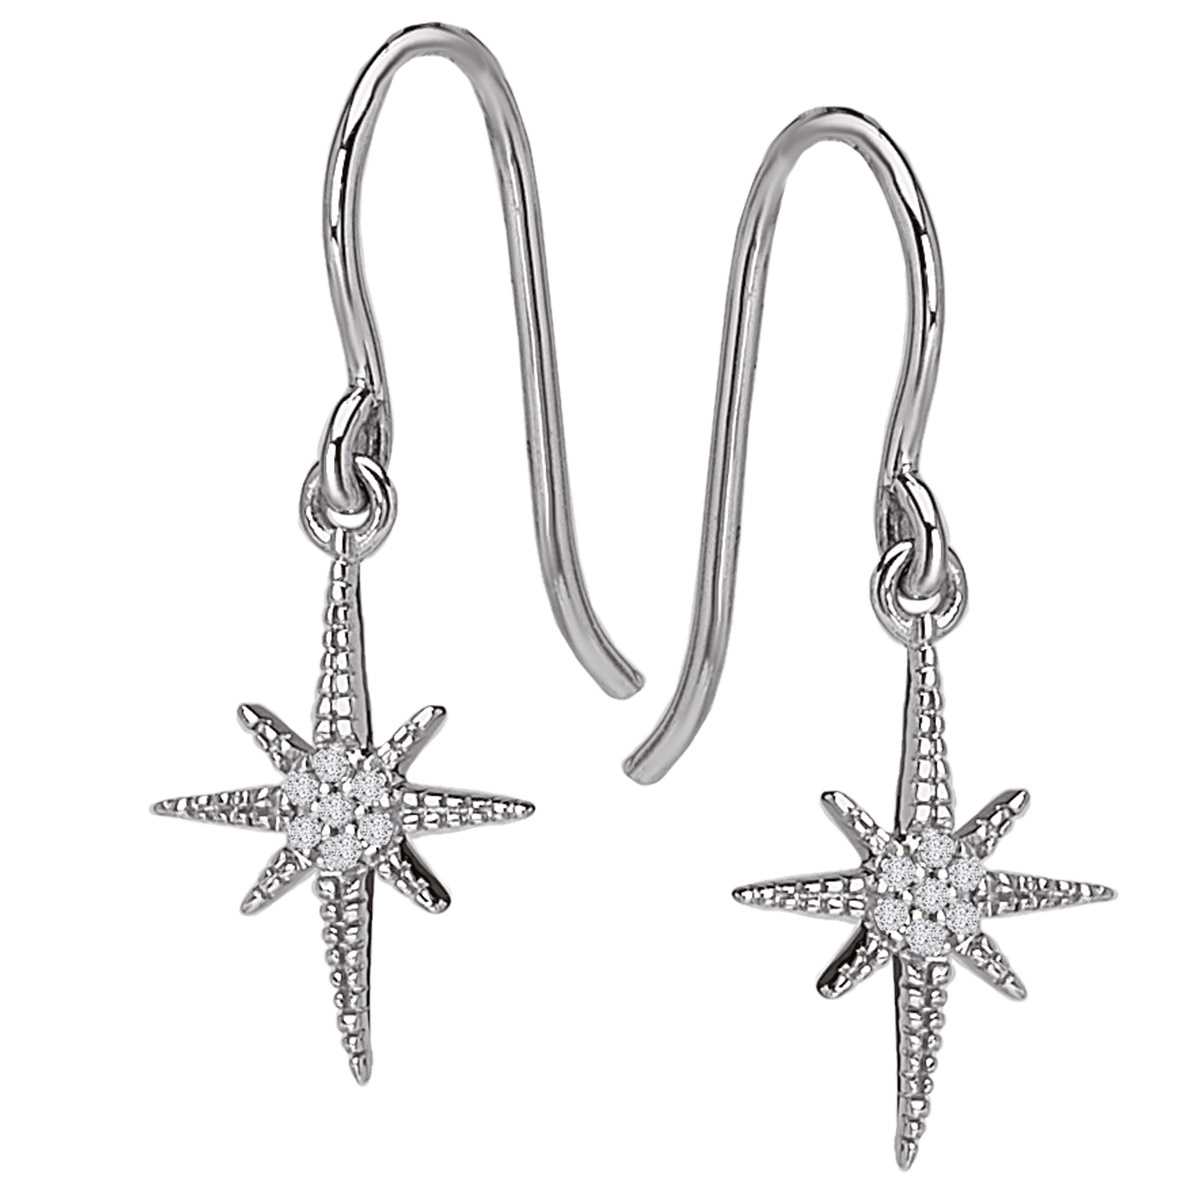 North Star Diamond Earrings - Front